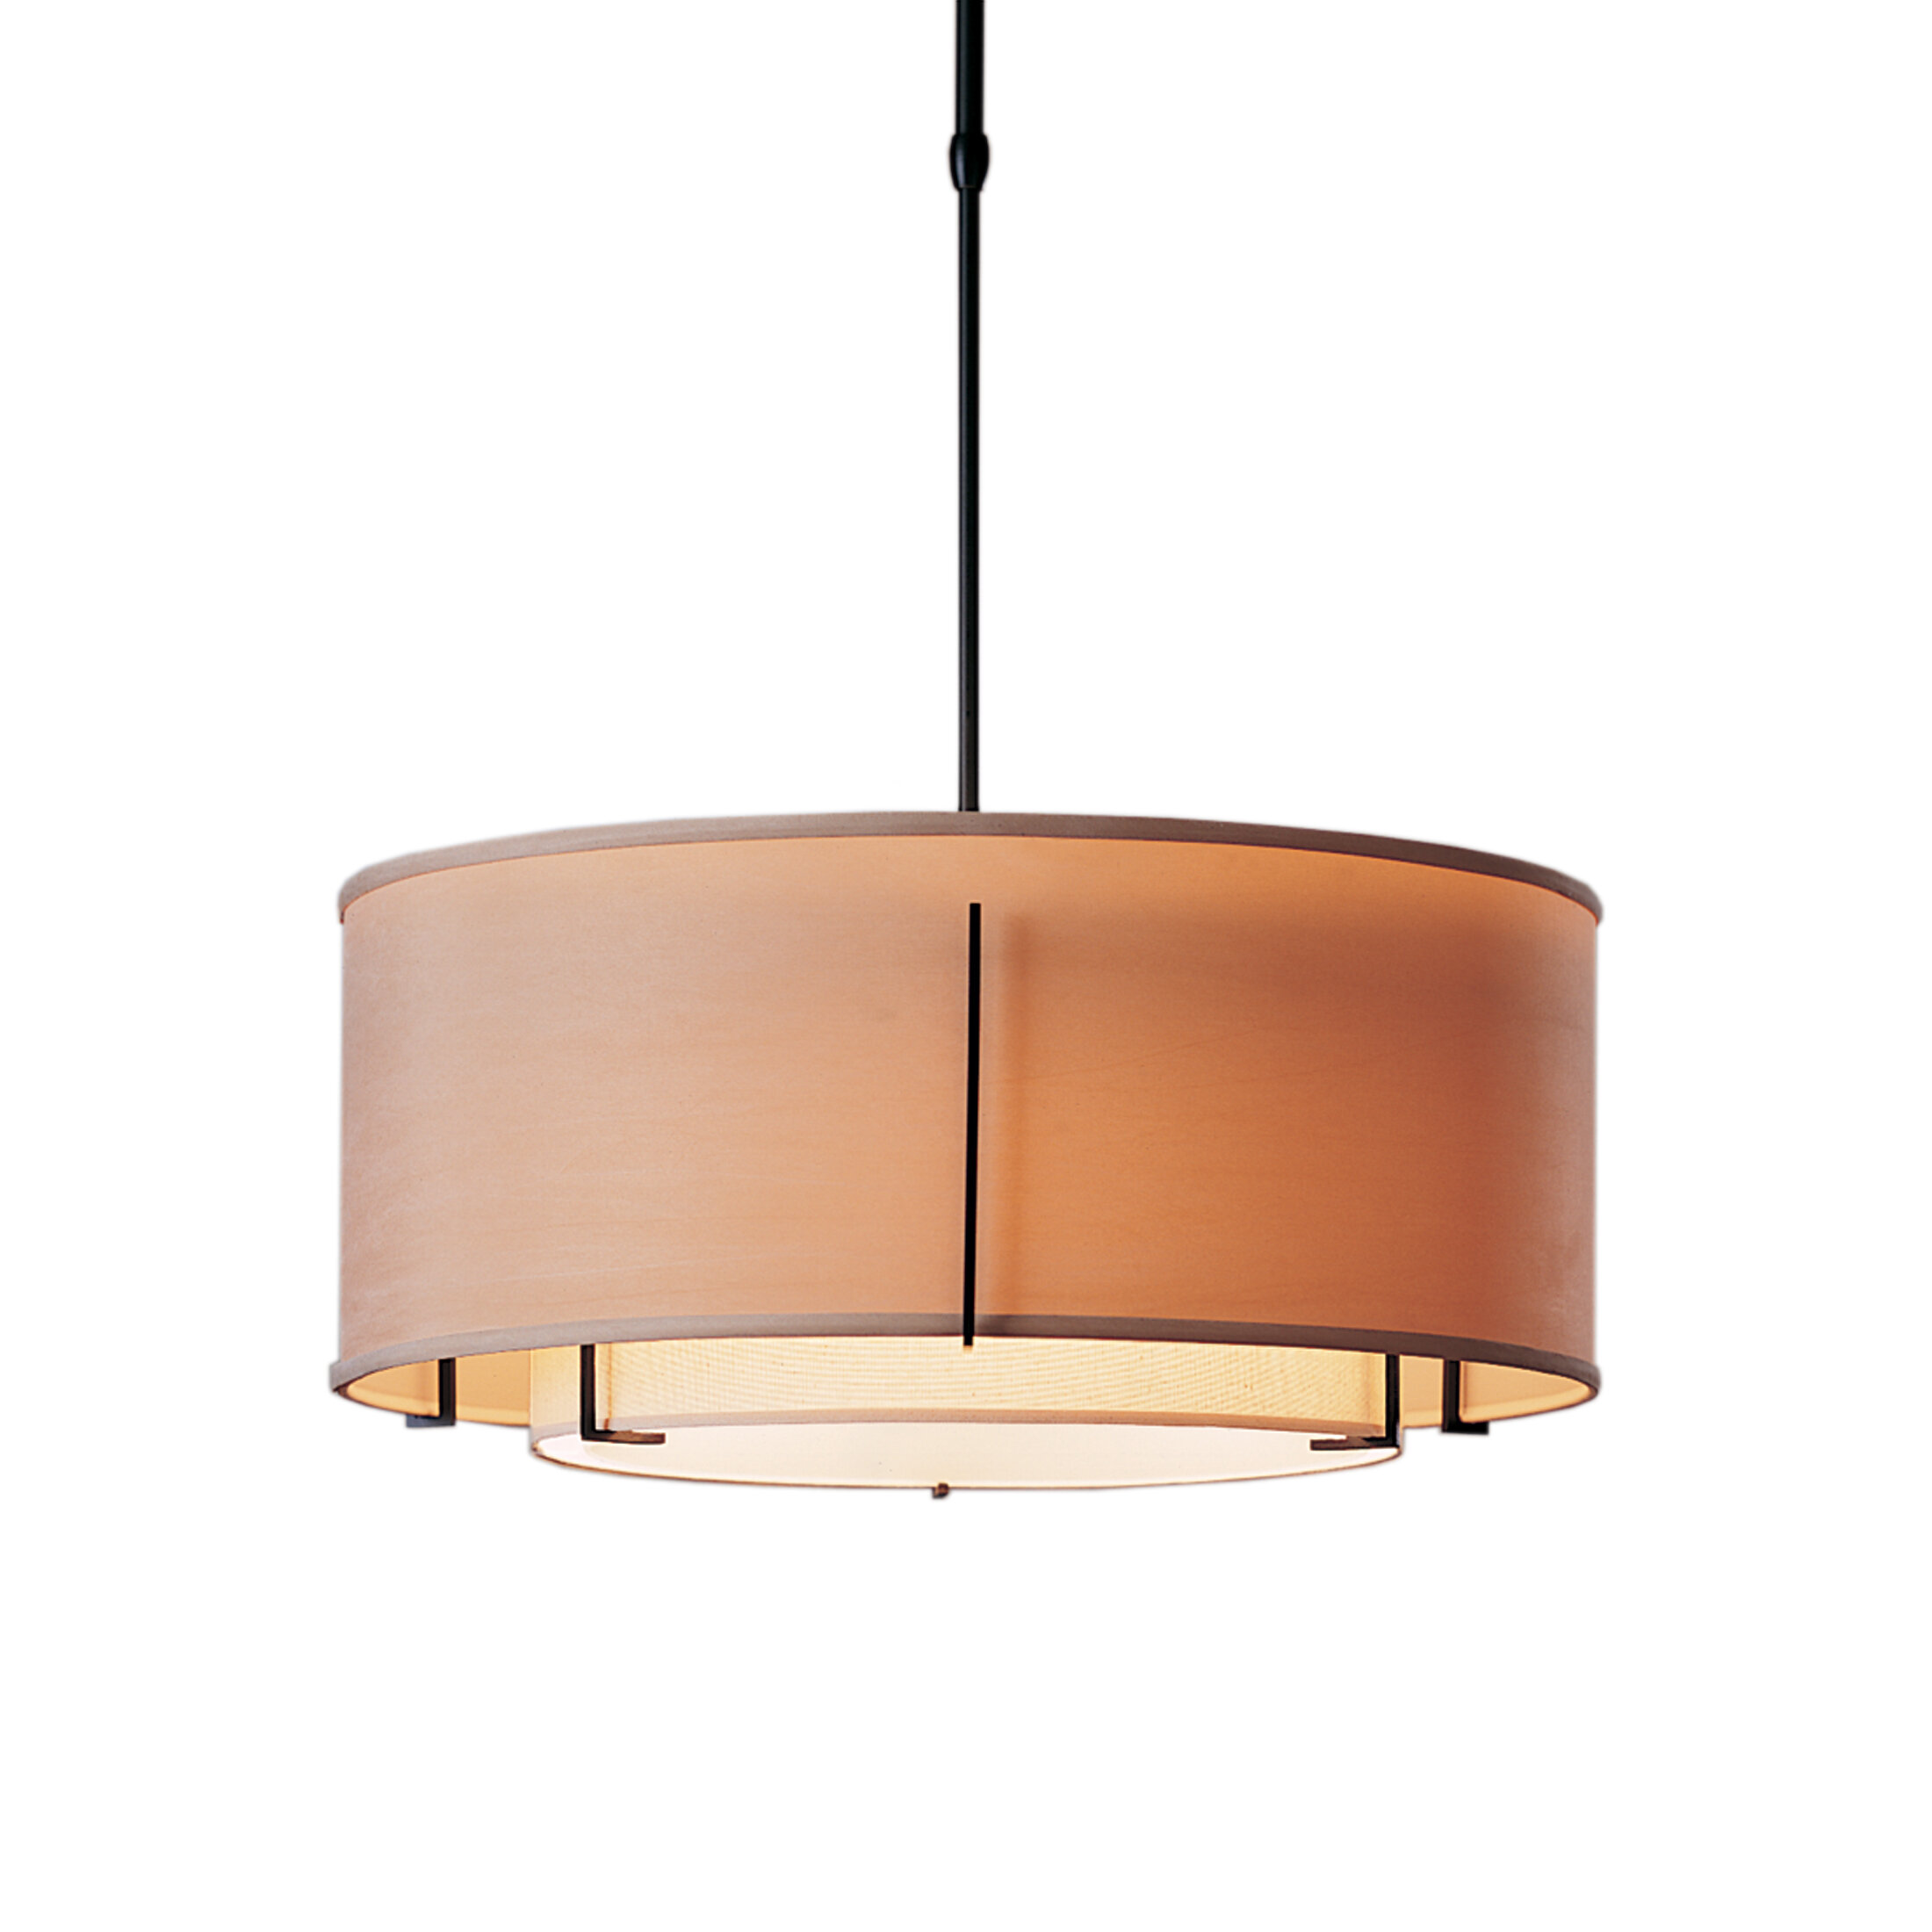 designs pablo silver from pendant lamp solis interior light ceiling drum download deluxe by